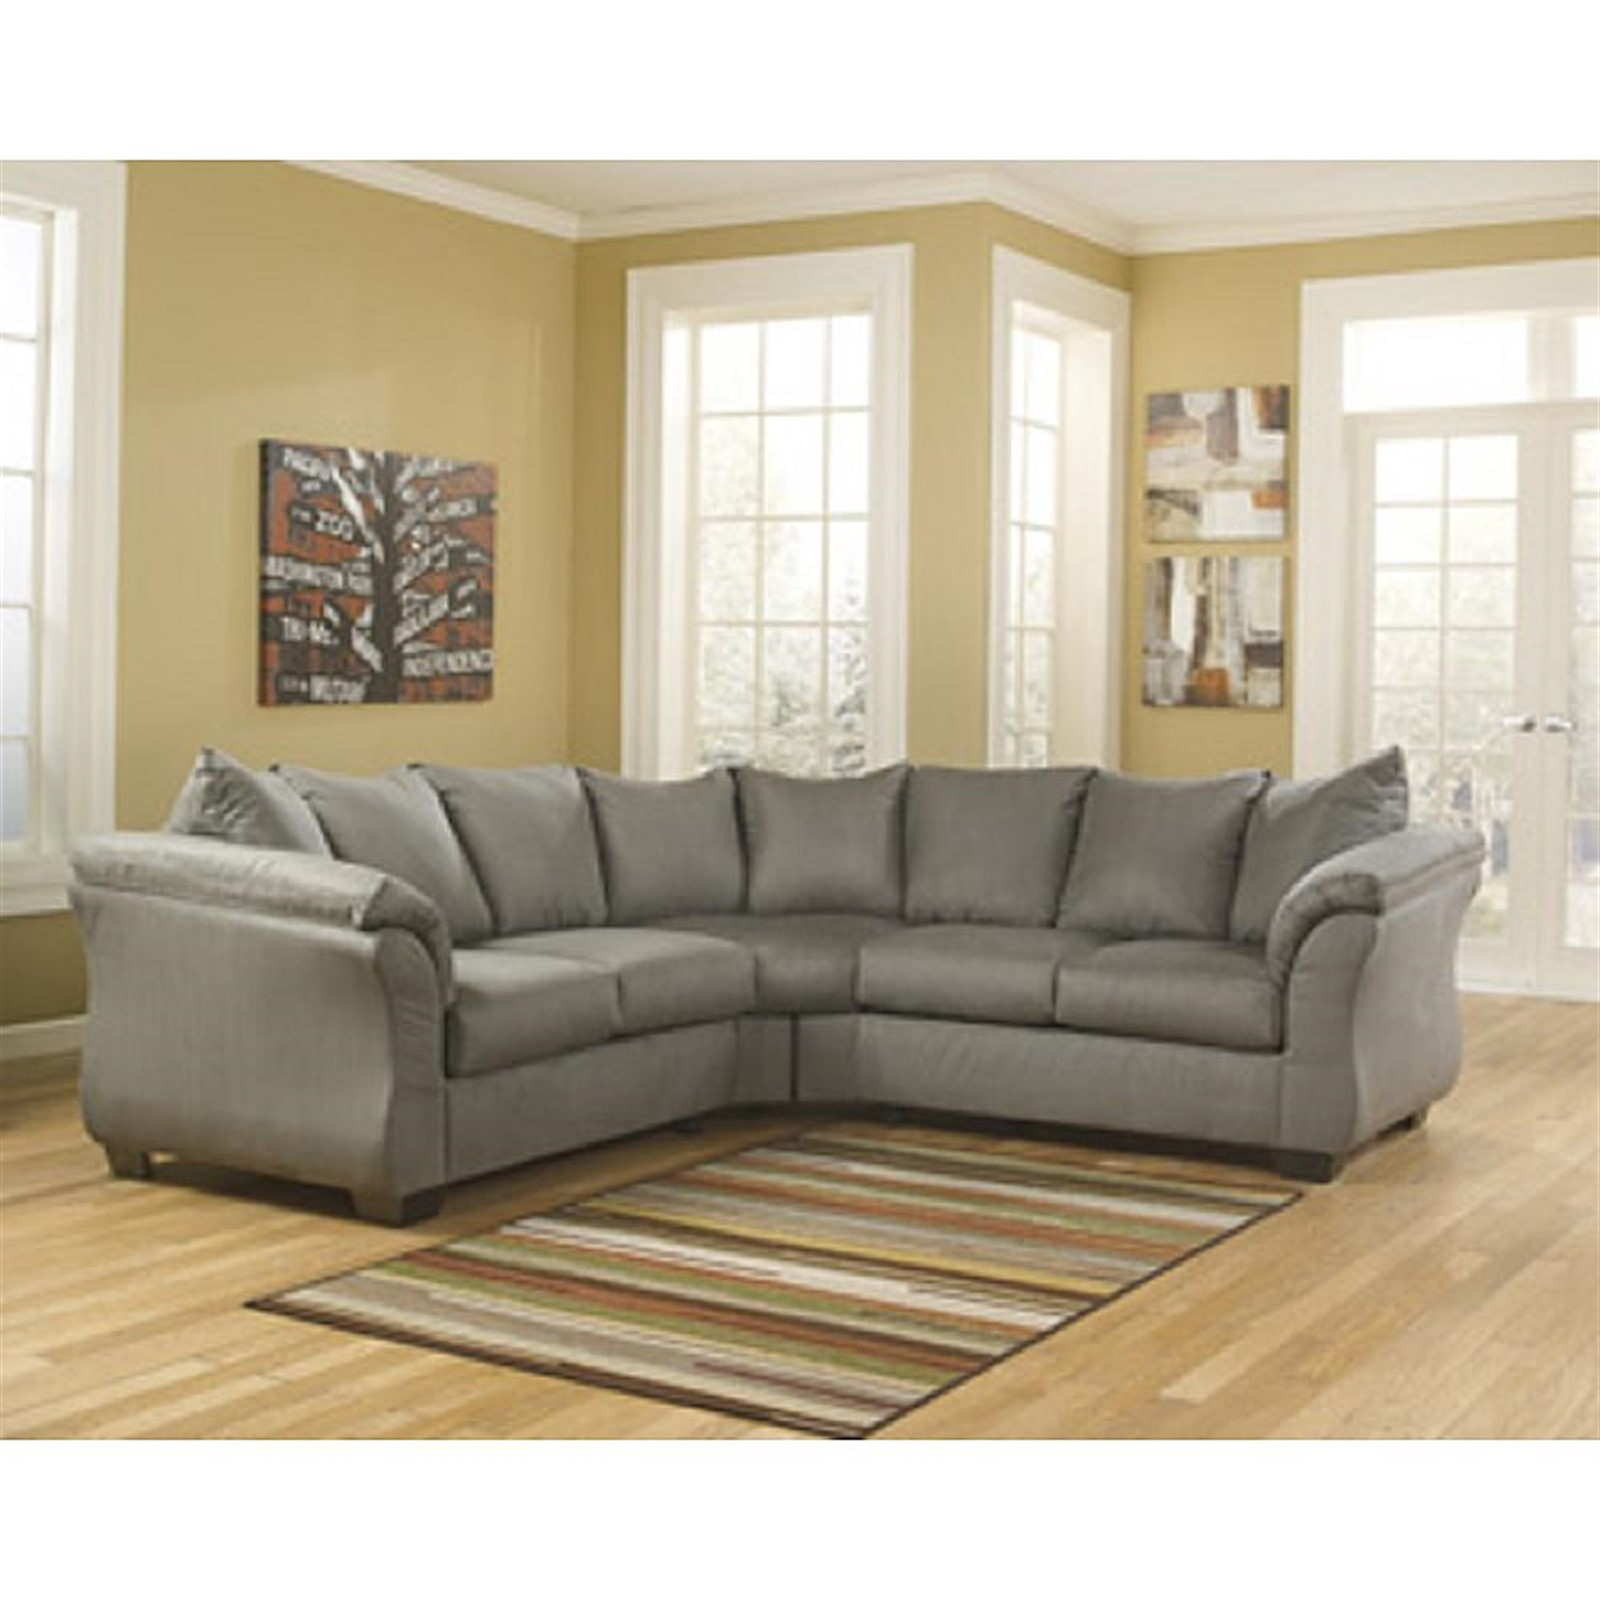 Signature Design by Ashley Darcy Cobblestone Sectional